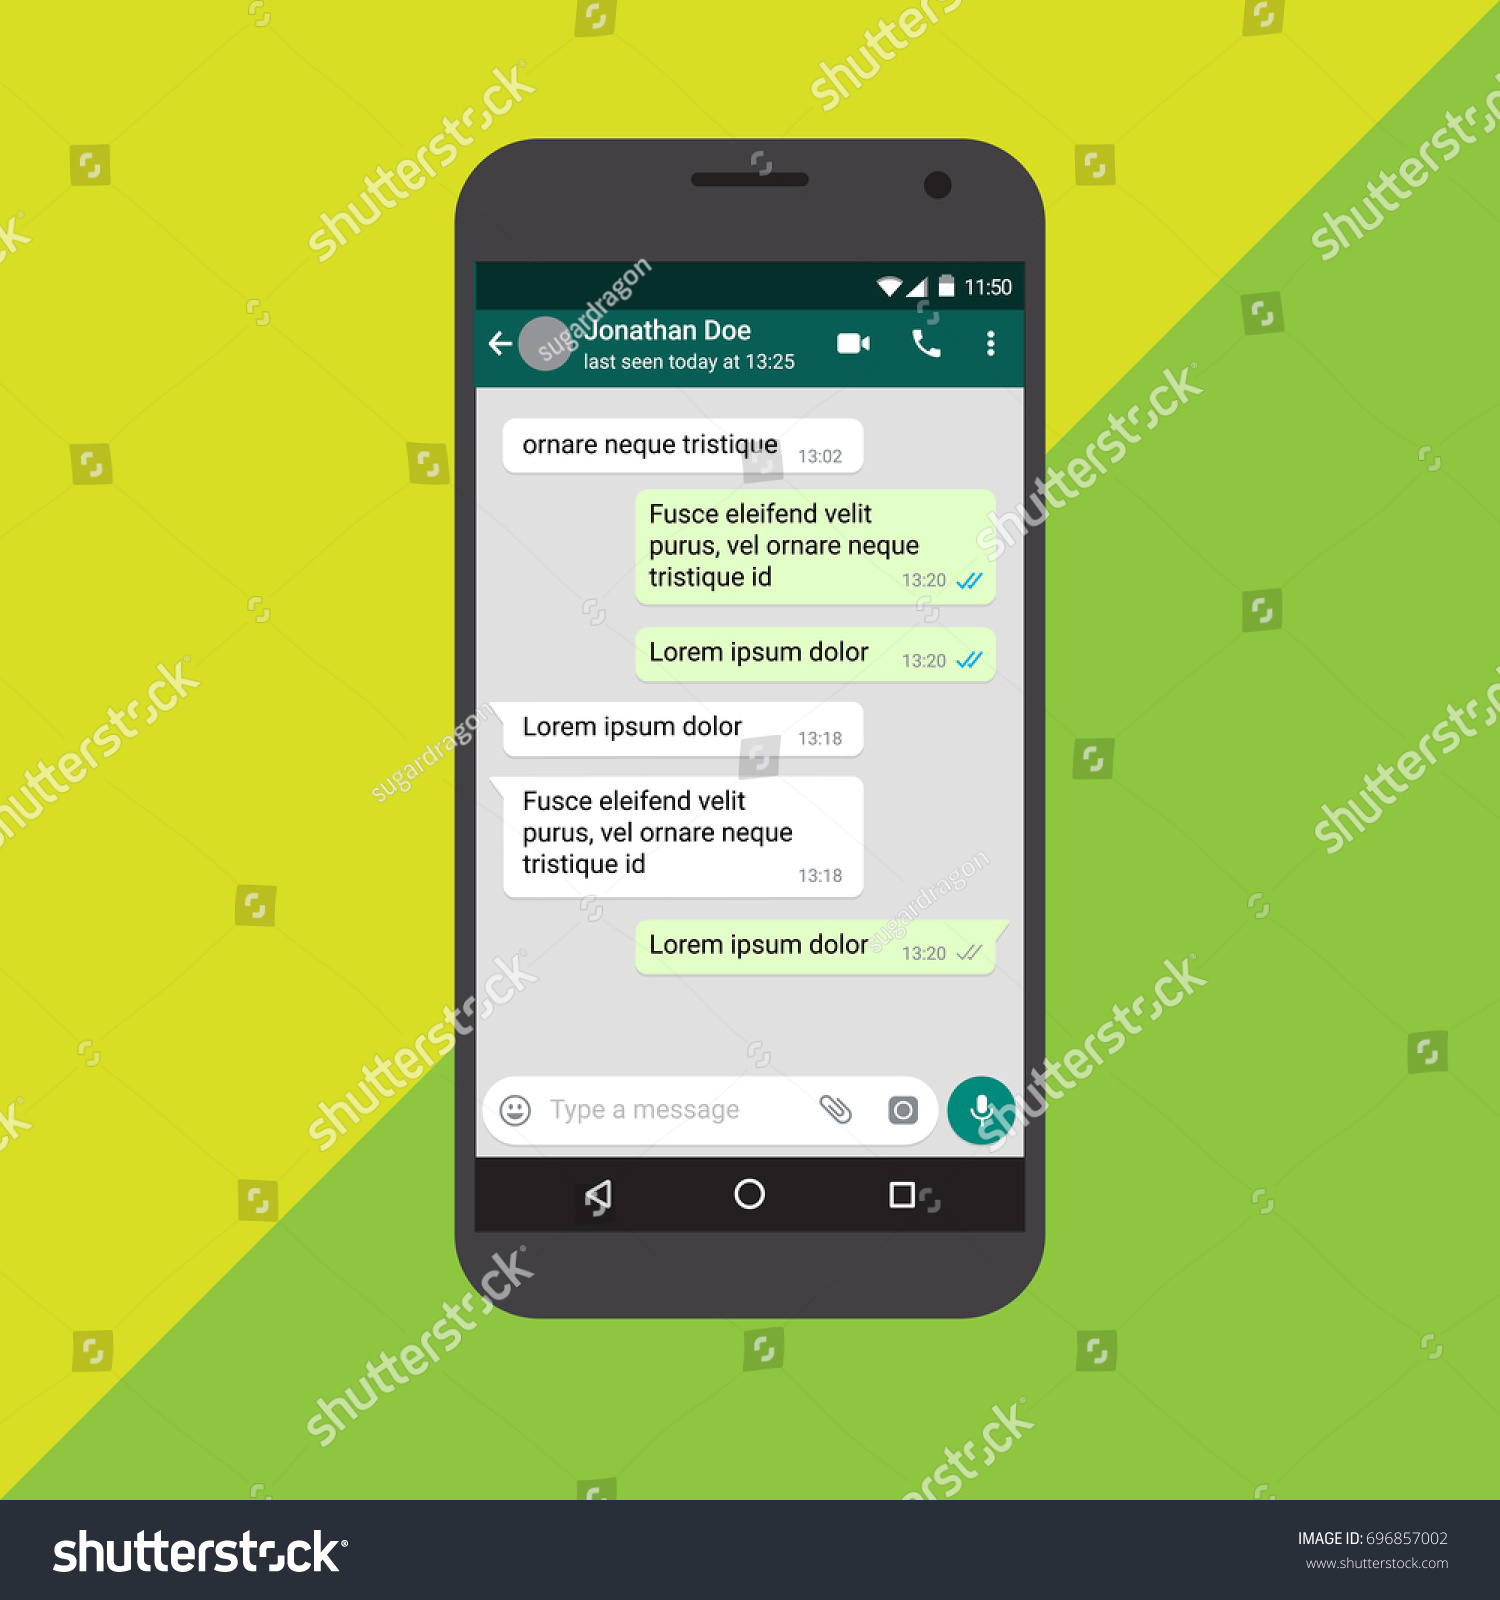 mobile chat screen app messaging template のベクター画像素材